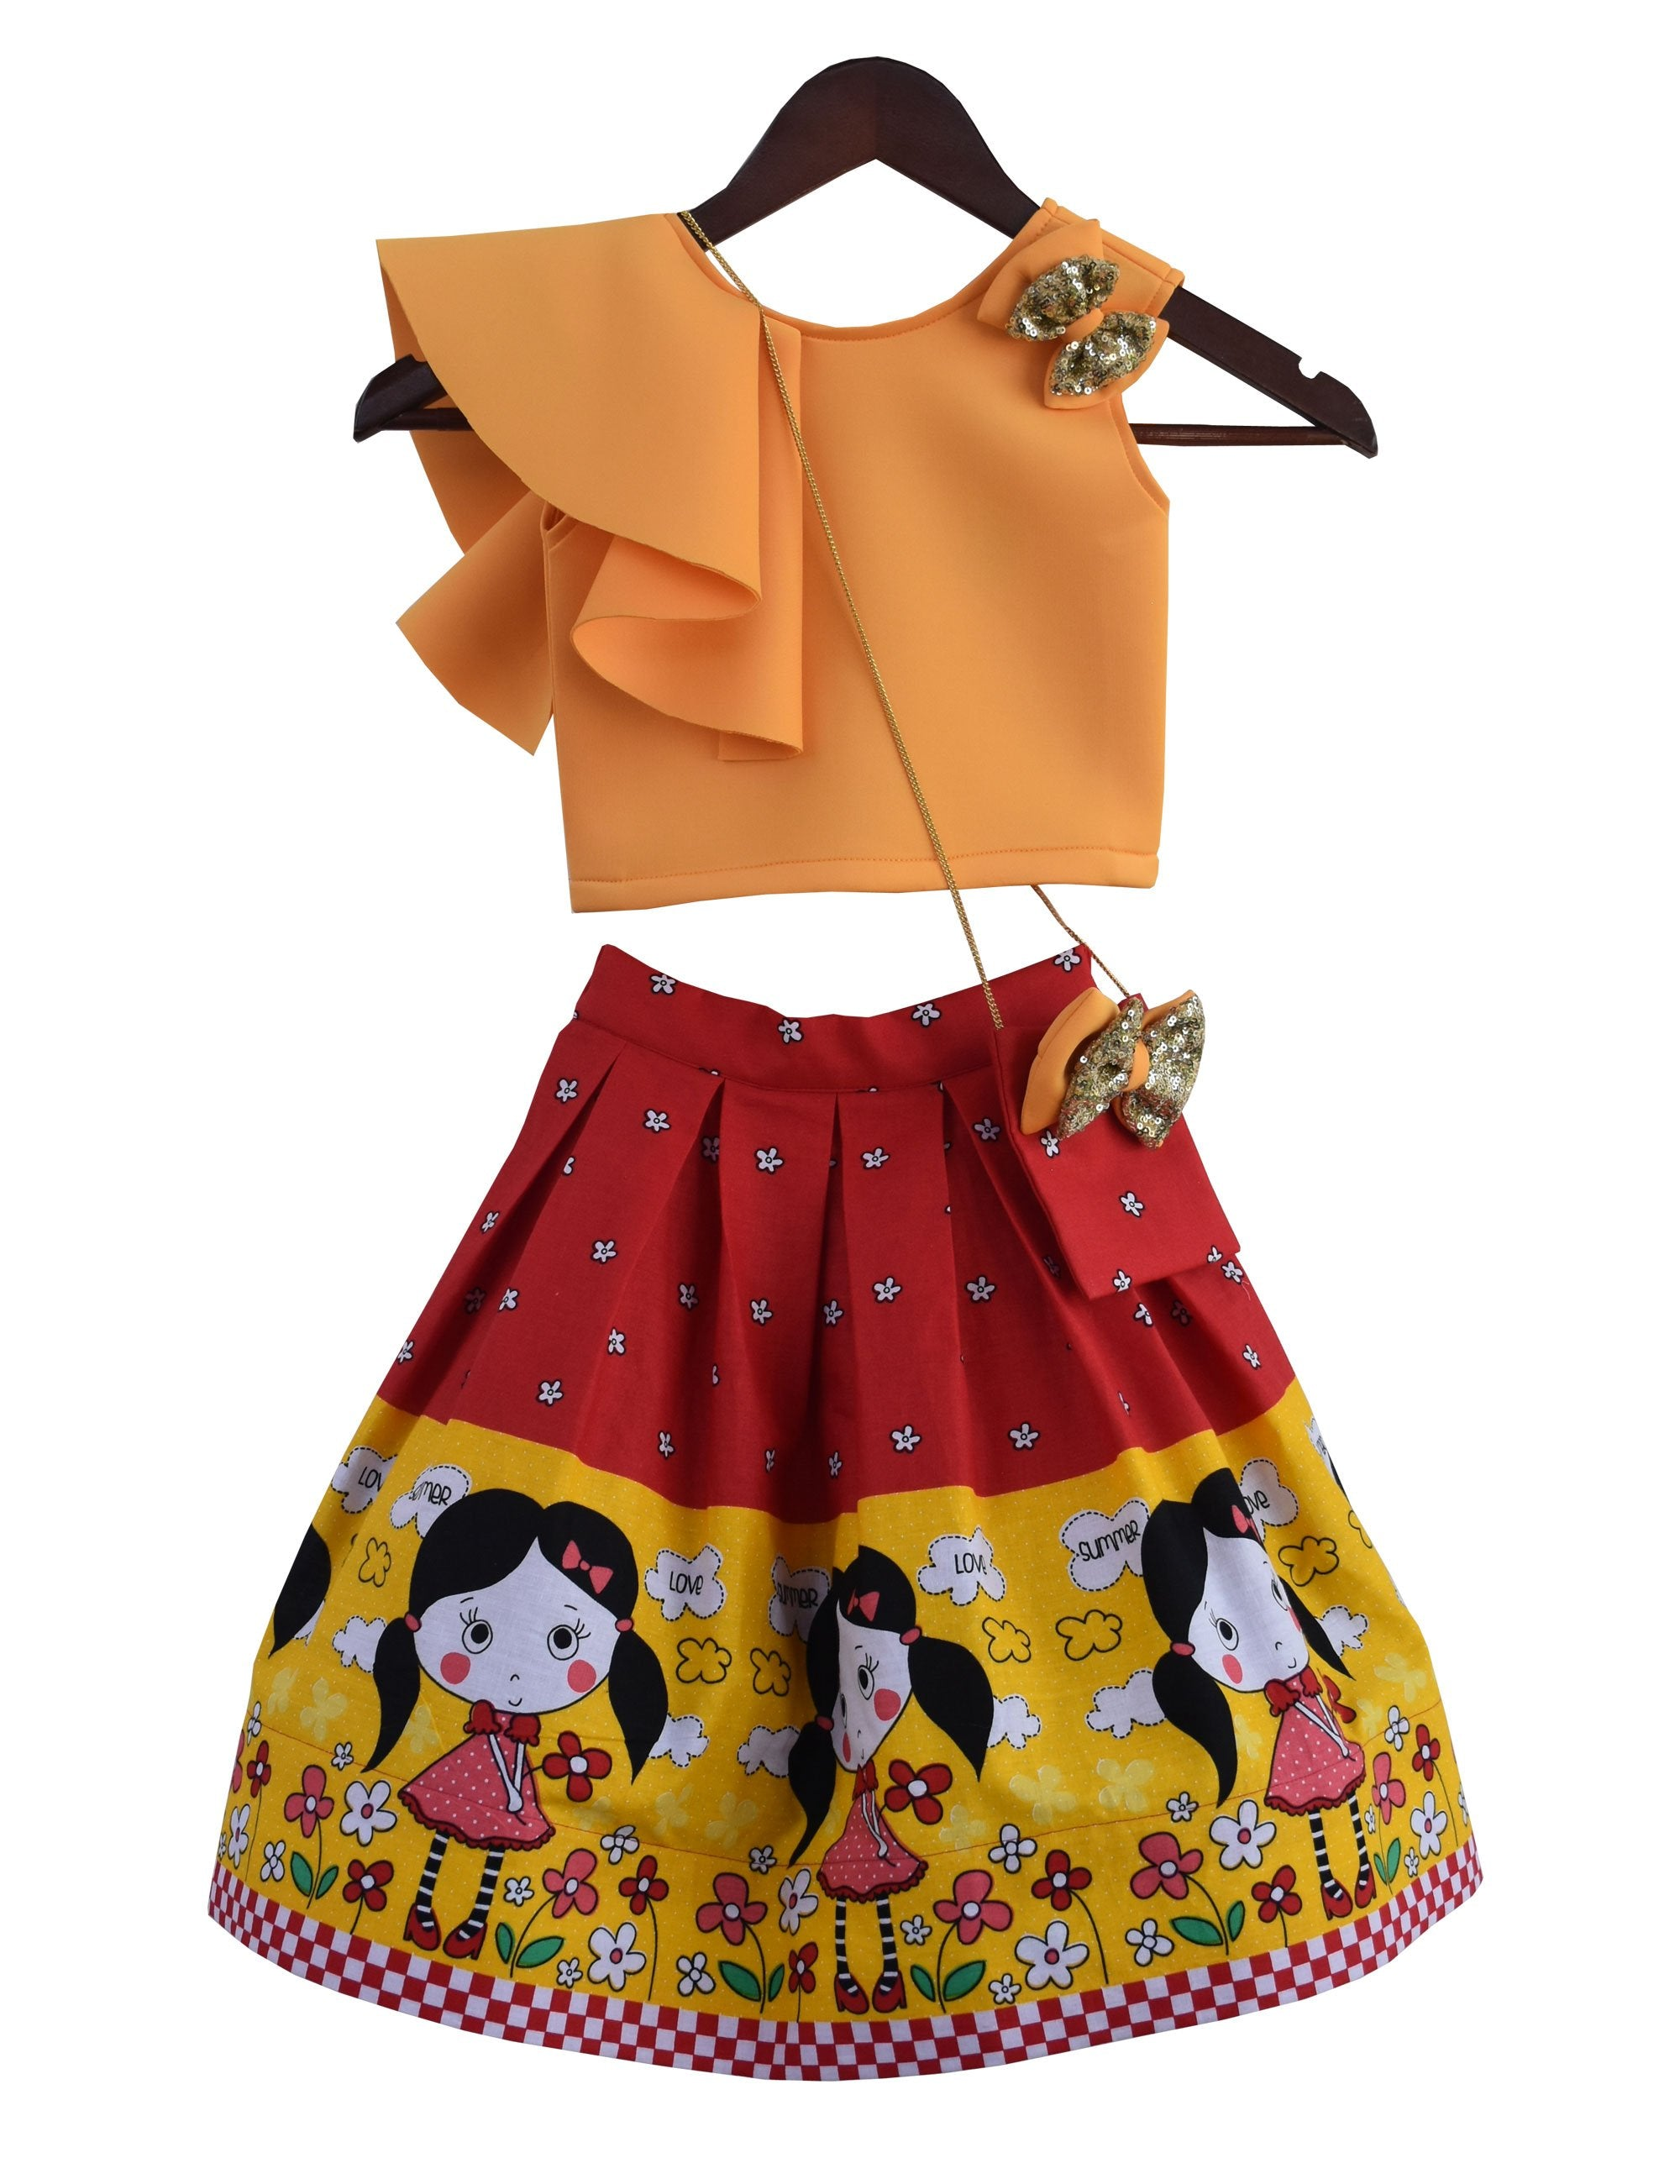 Crop Top with Printed Mid Calf Skirt in Orange Colour for Girls